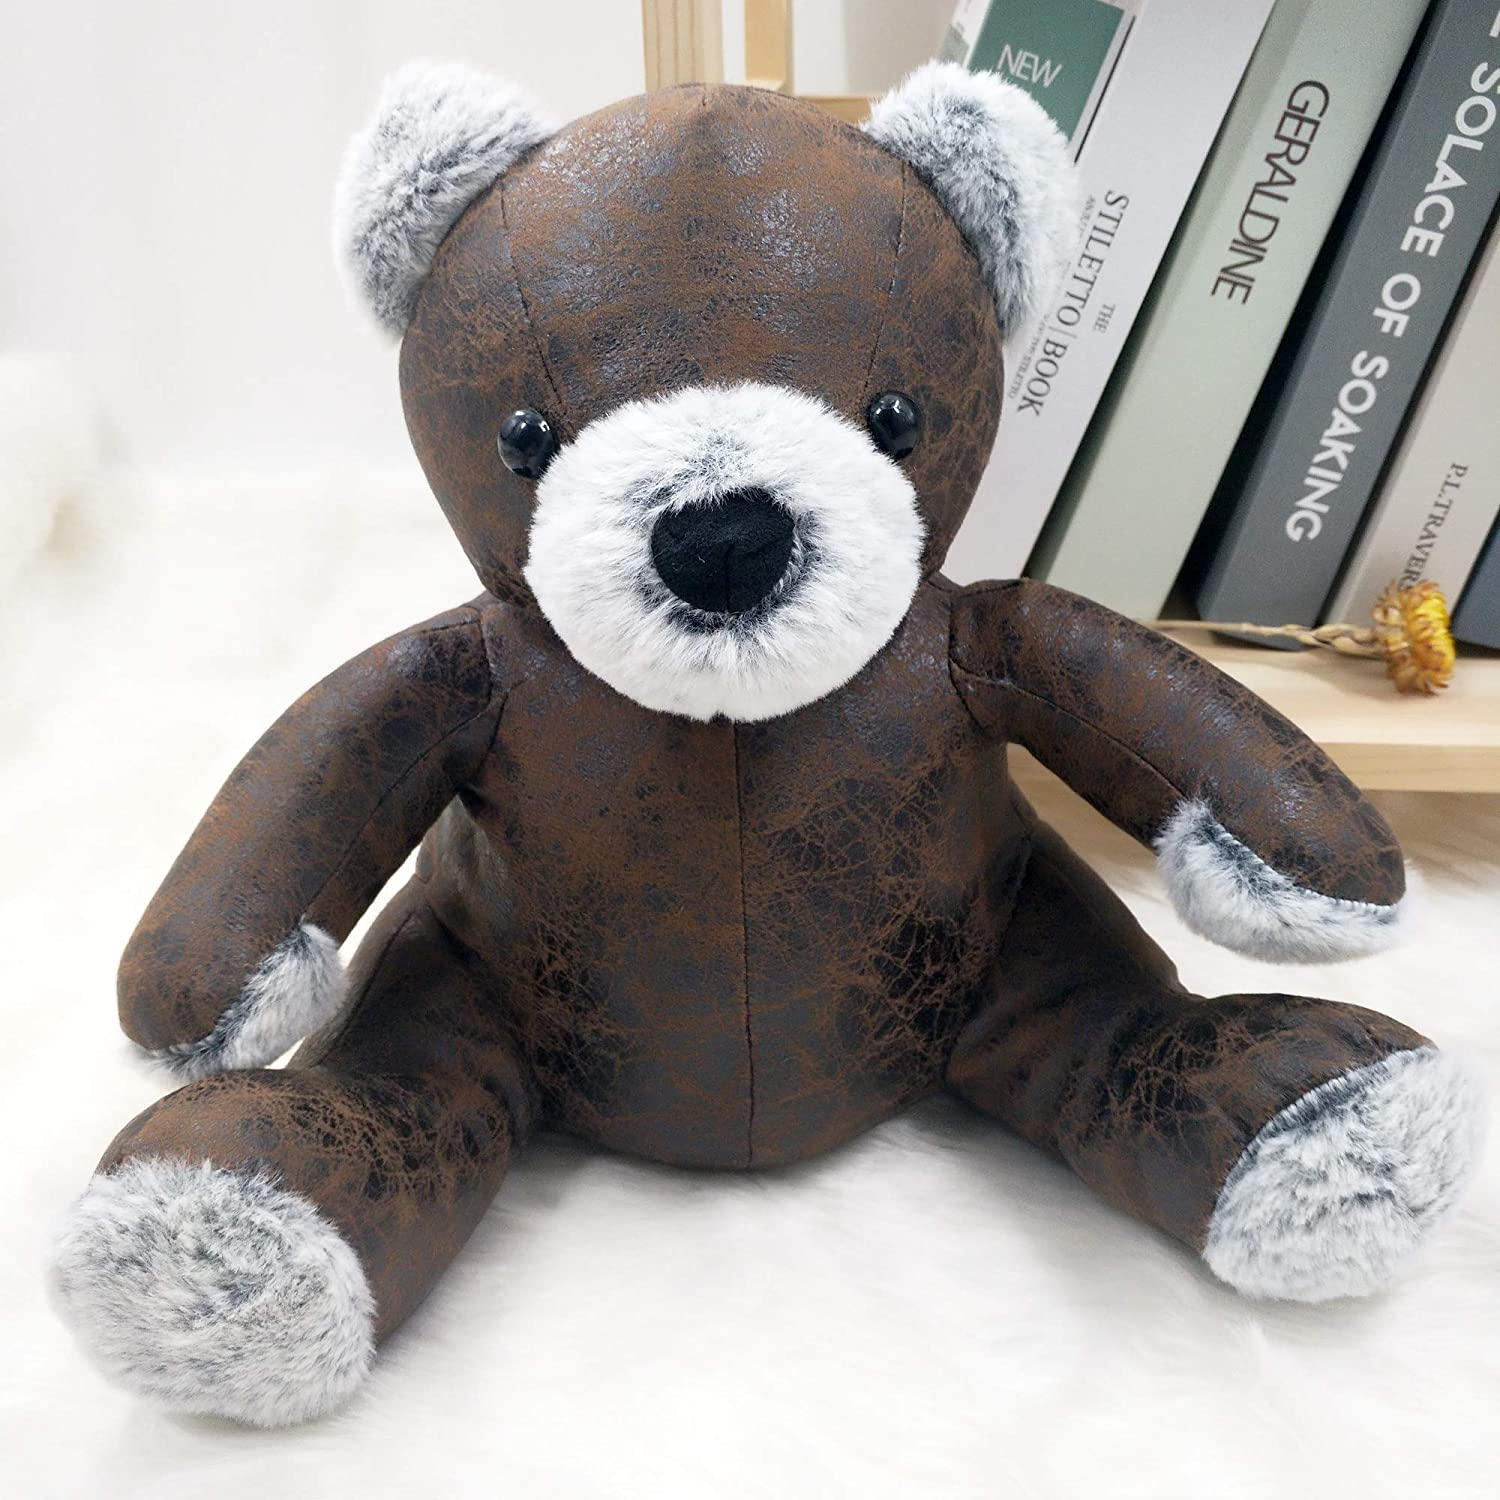 Fabric Animal Door Stopper Housewarming Gifts Doorstops Book Stopper Wall Protectors Anti Collision Cute Bear